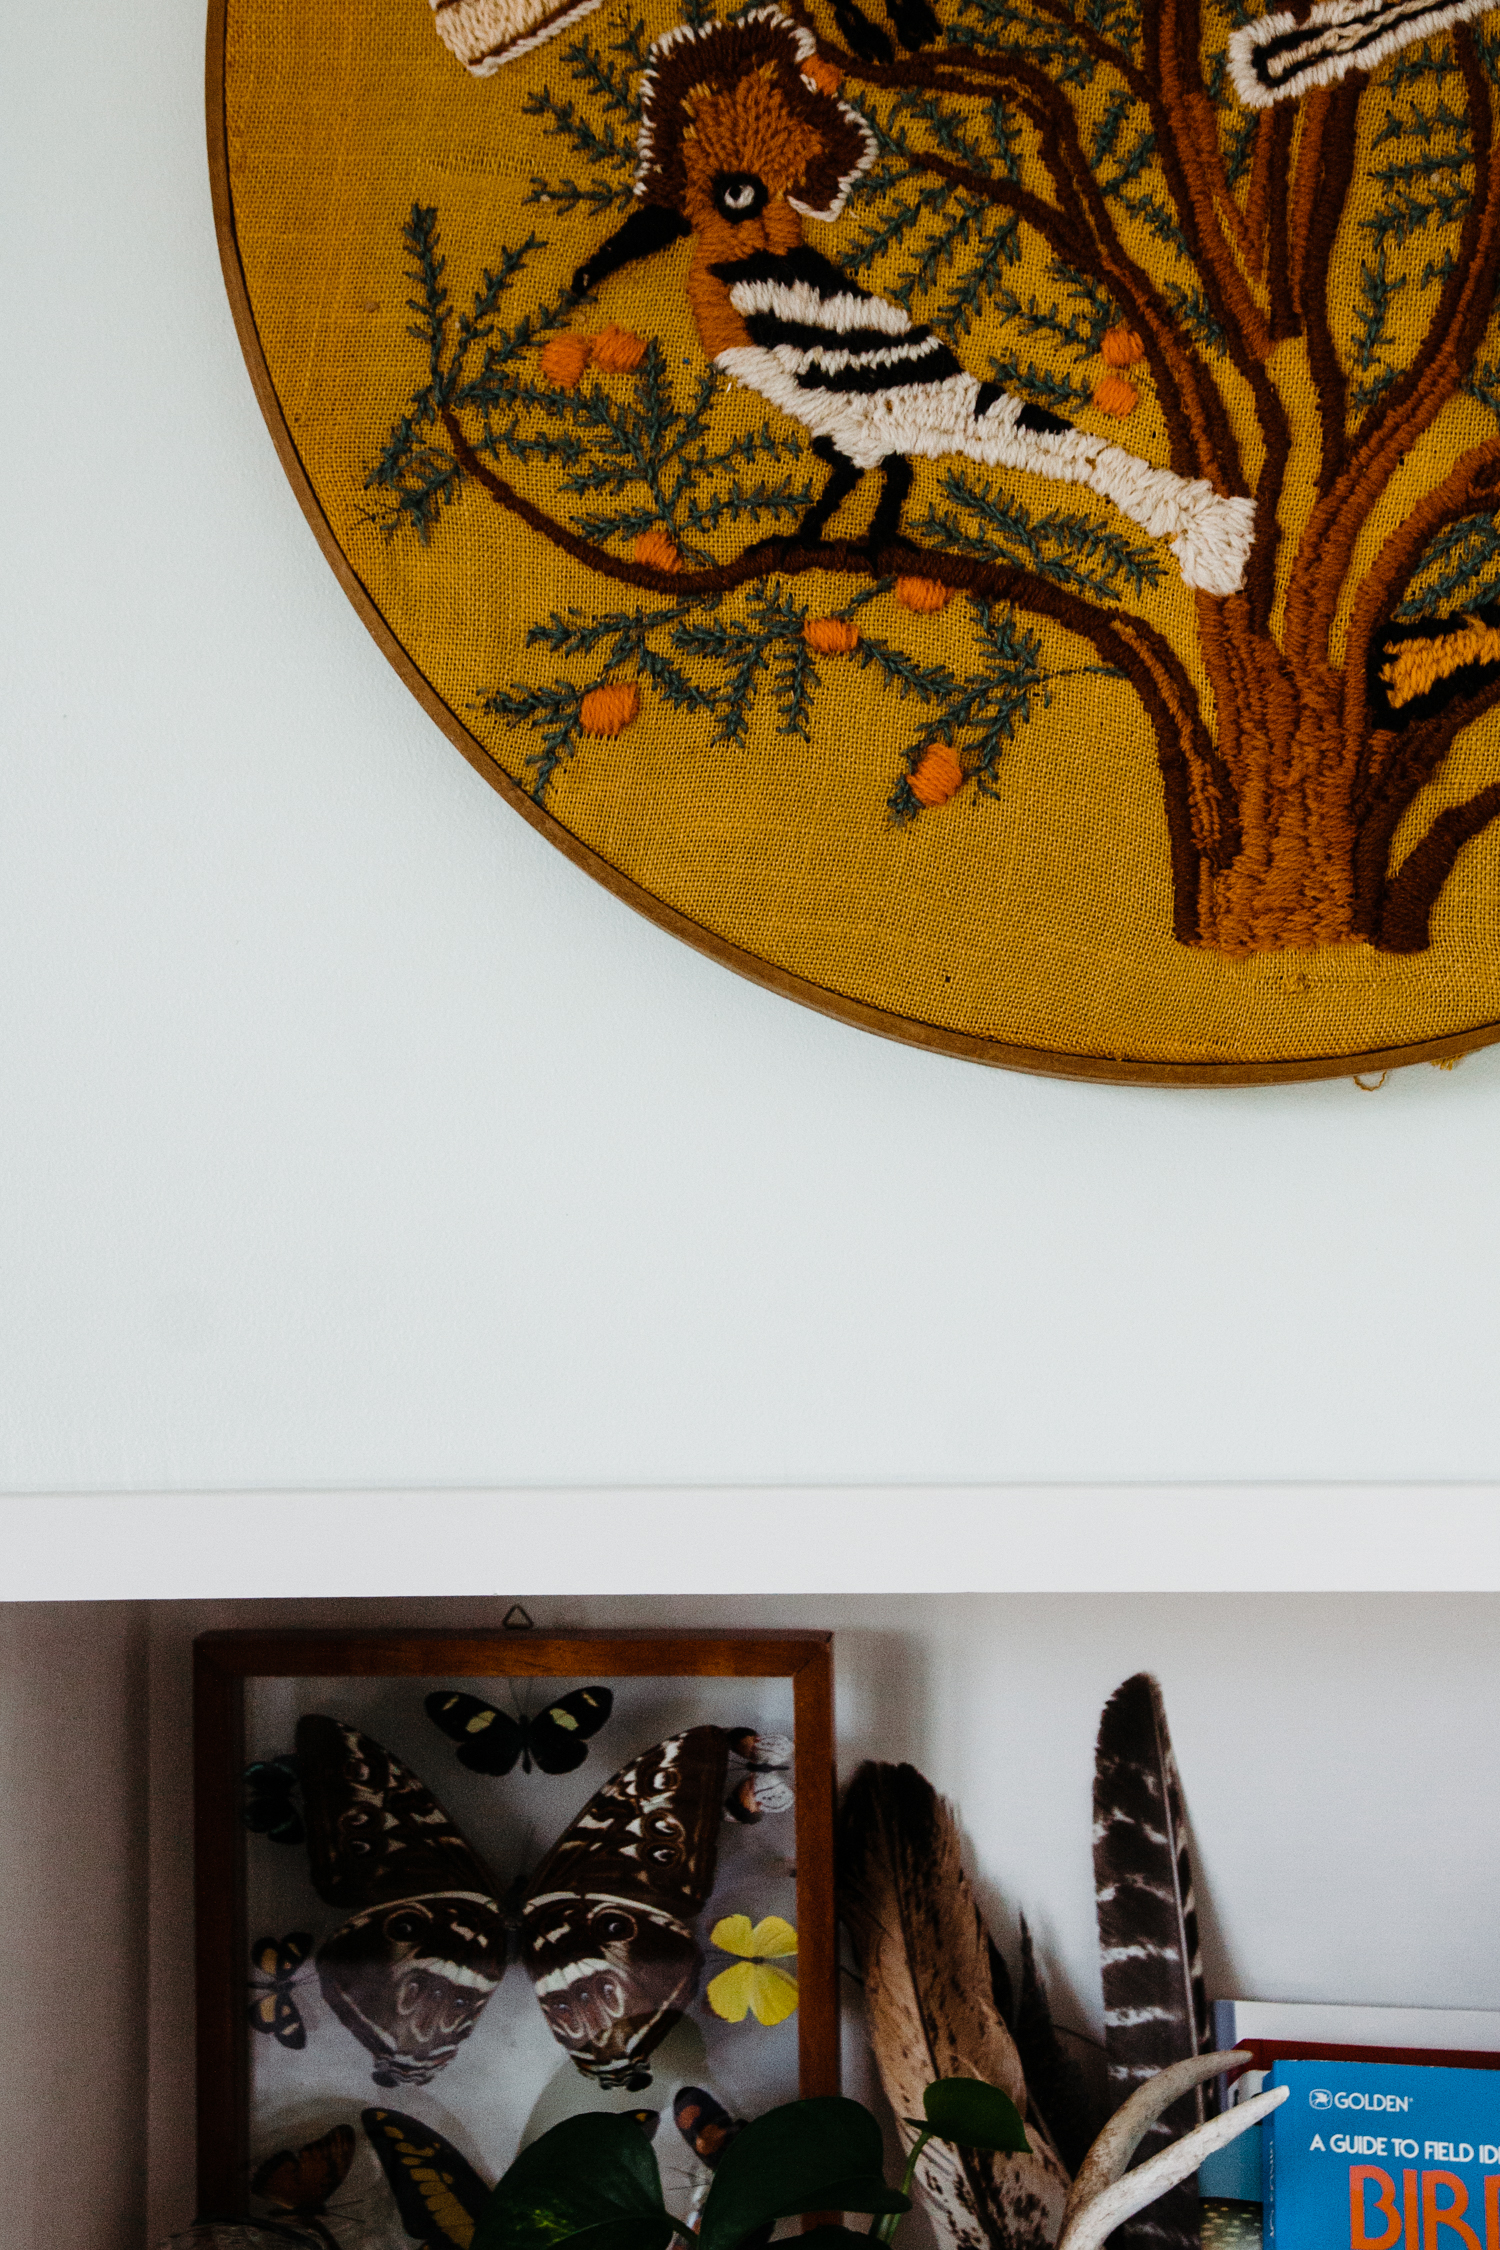 We love love love the thought and detail behind the artwork and found object vignettes throughout the home.